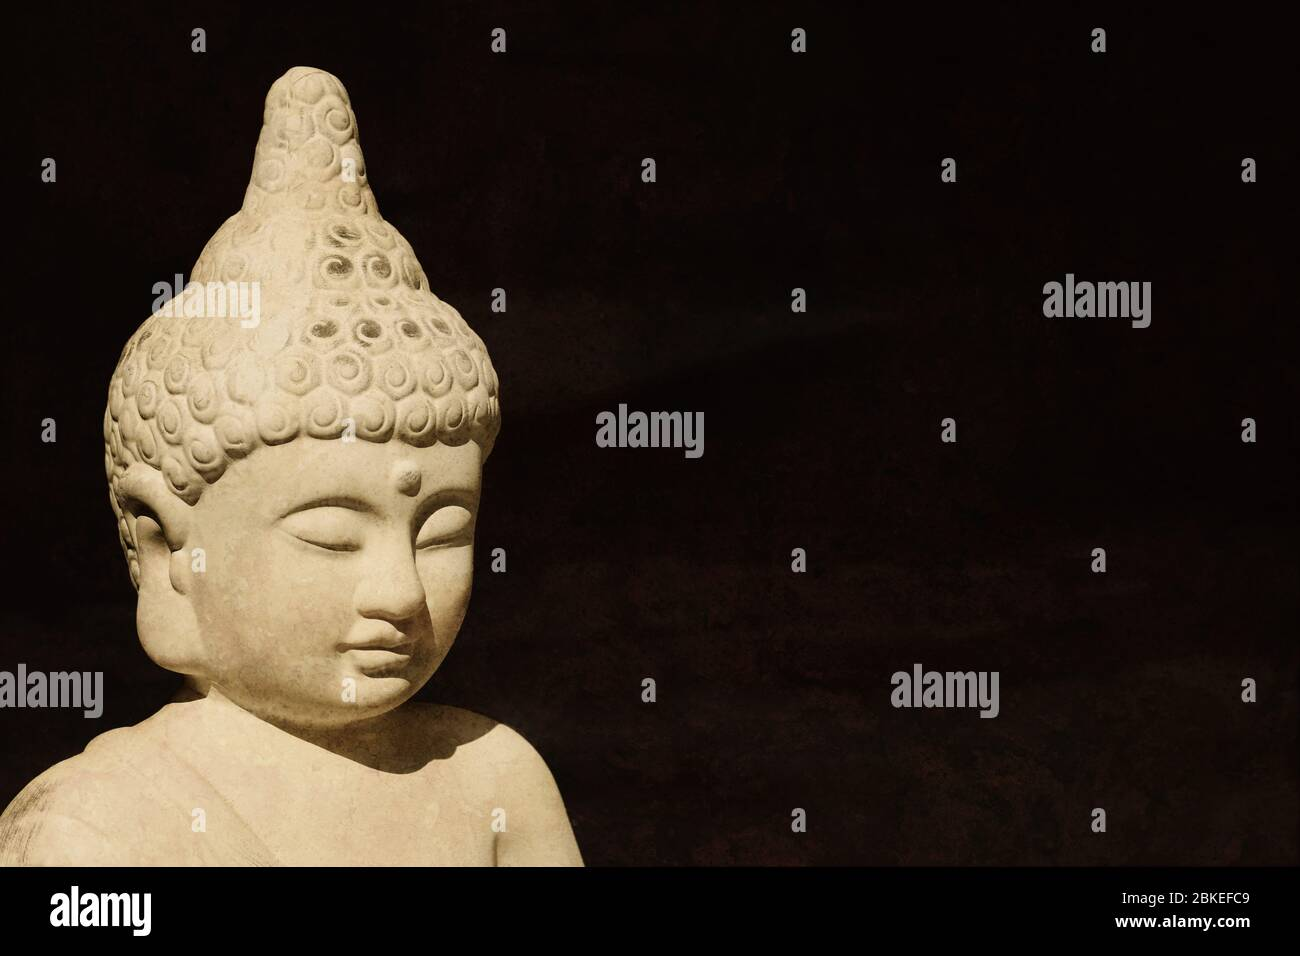 buddha statue head made of stone - buddhism meditation enlightenment religion faith and spirituality concept - black background with copy space Stock Photo